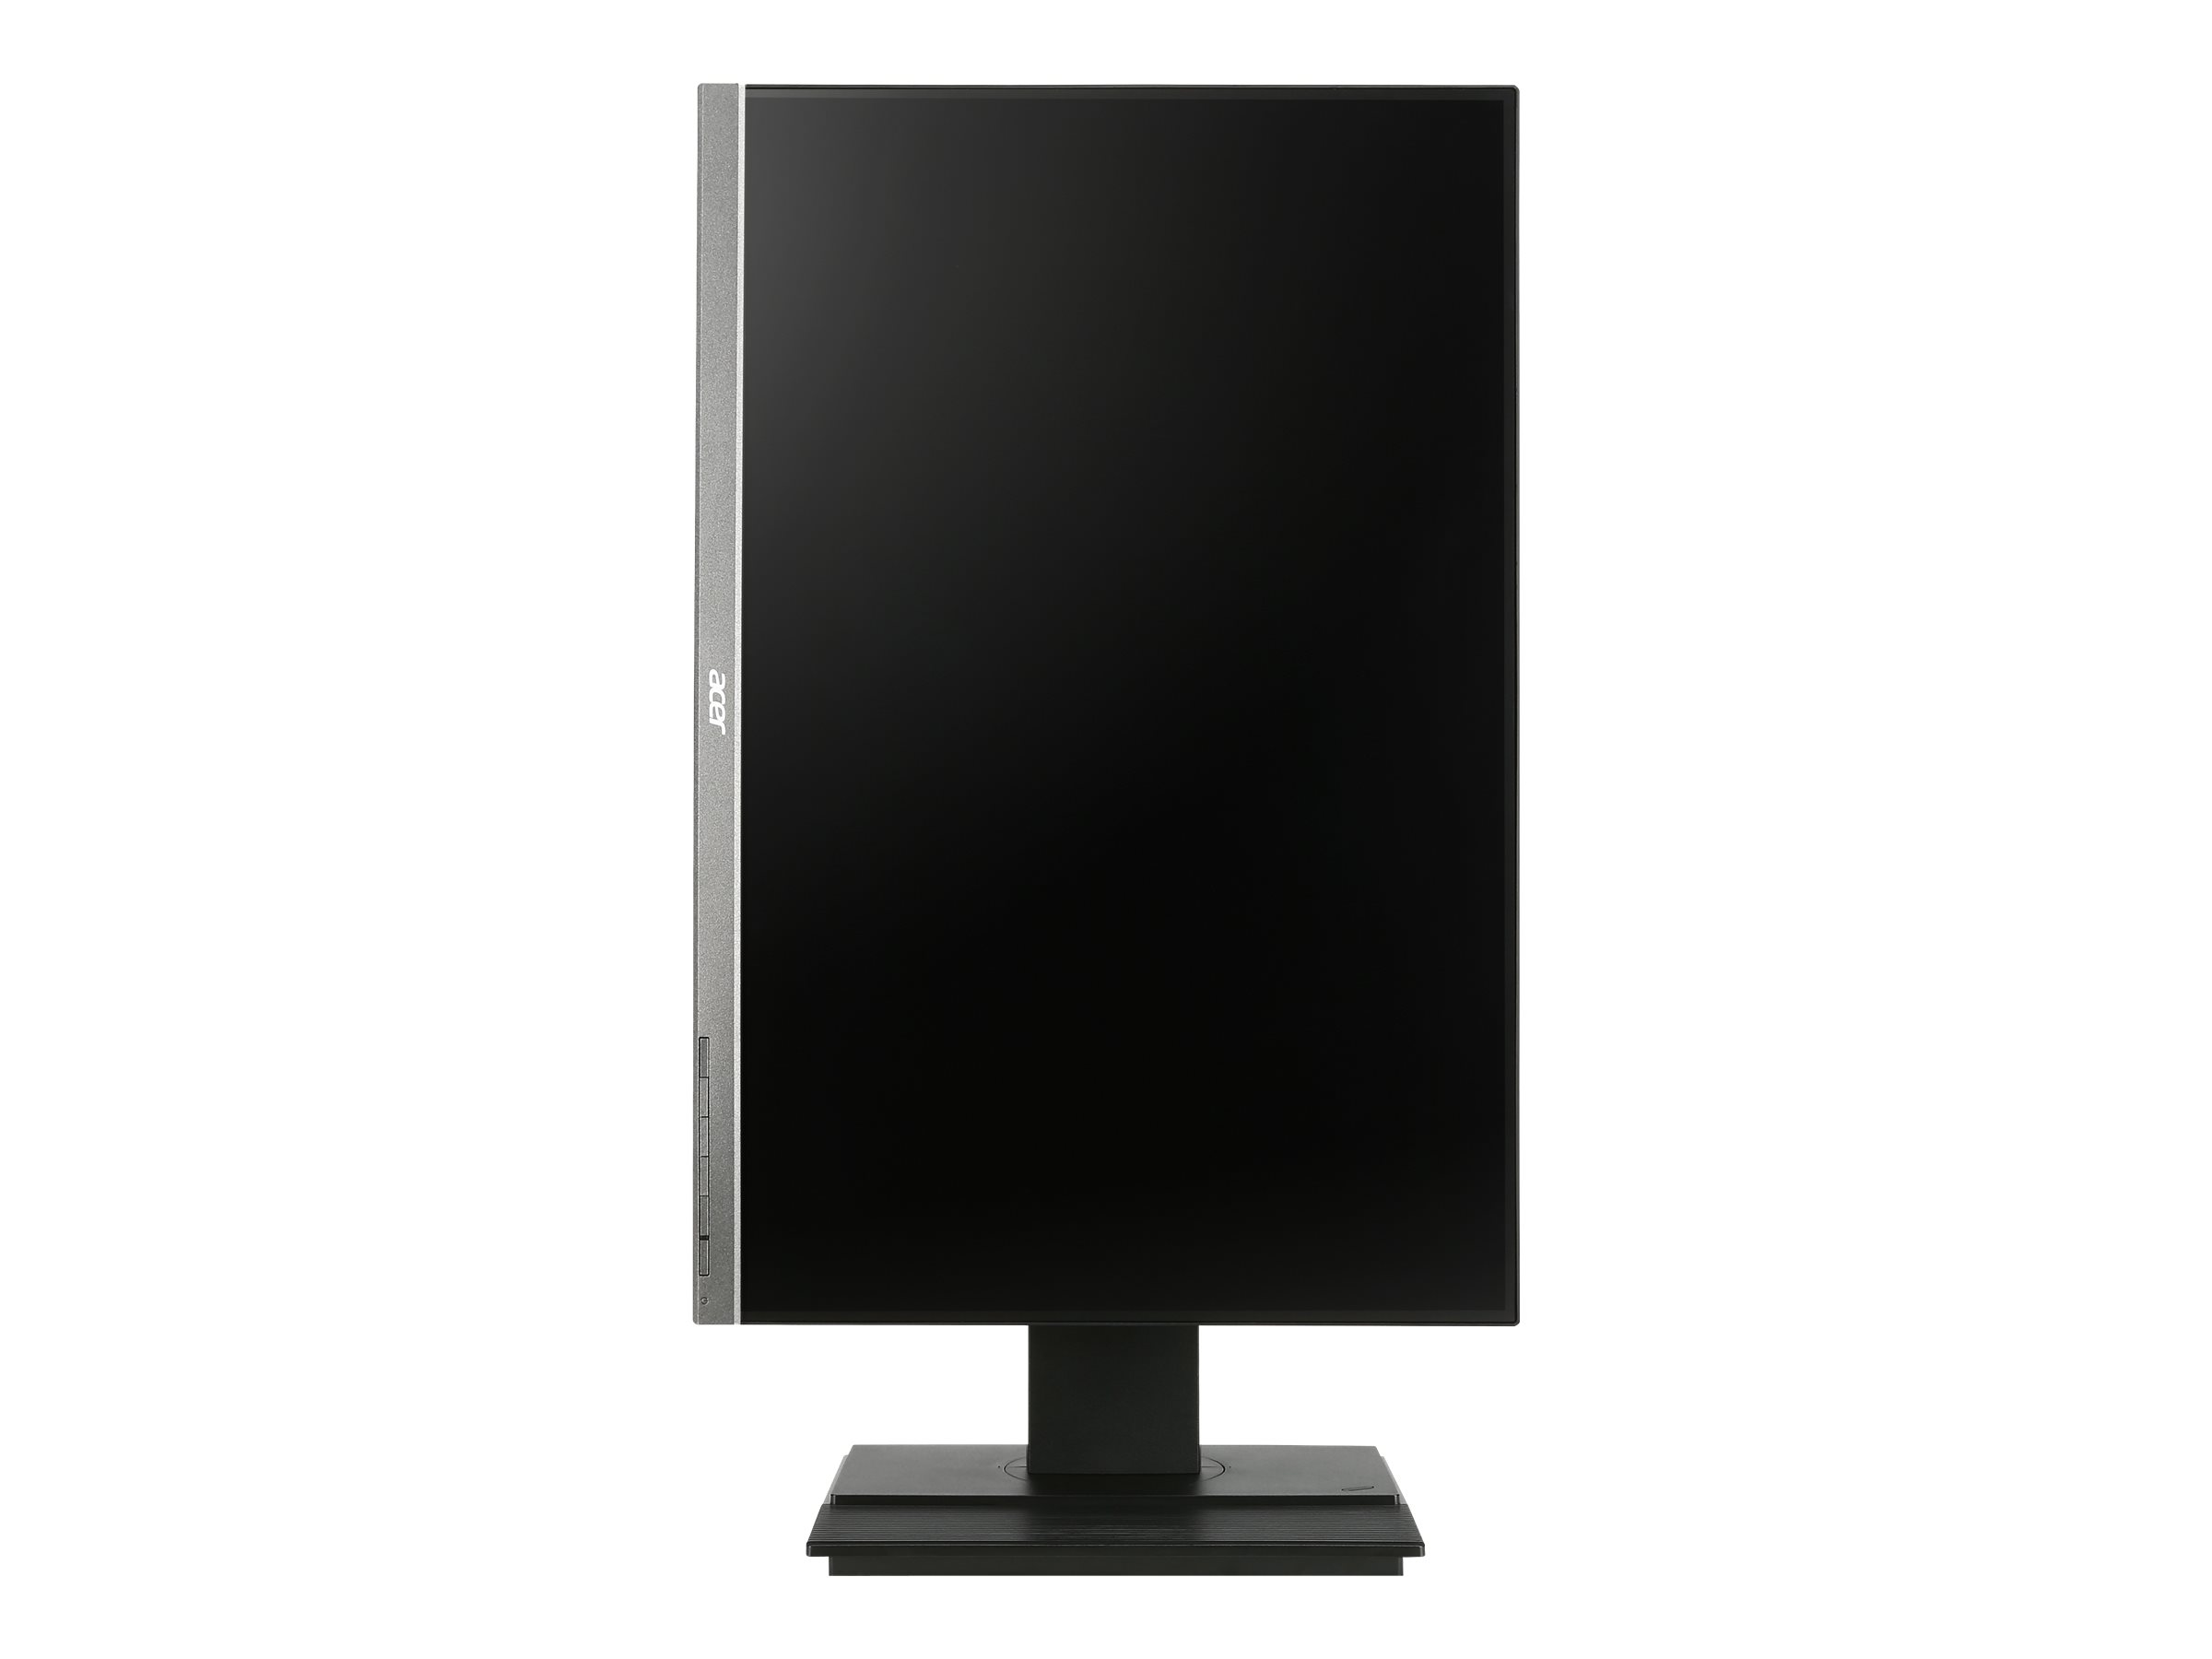 Image for Acer UM.FB6AA.003 24 1920x1200 IPS w Speakers from Circuit City